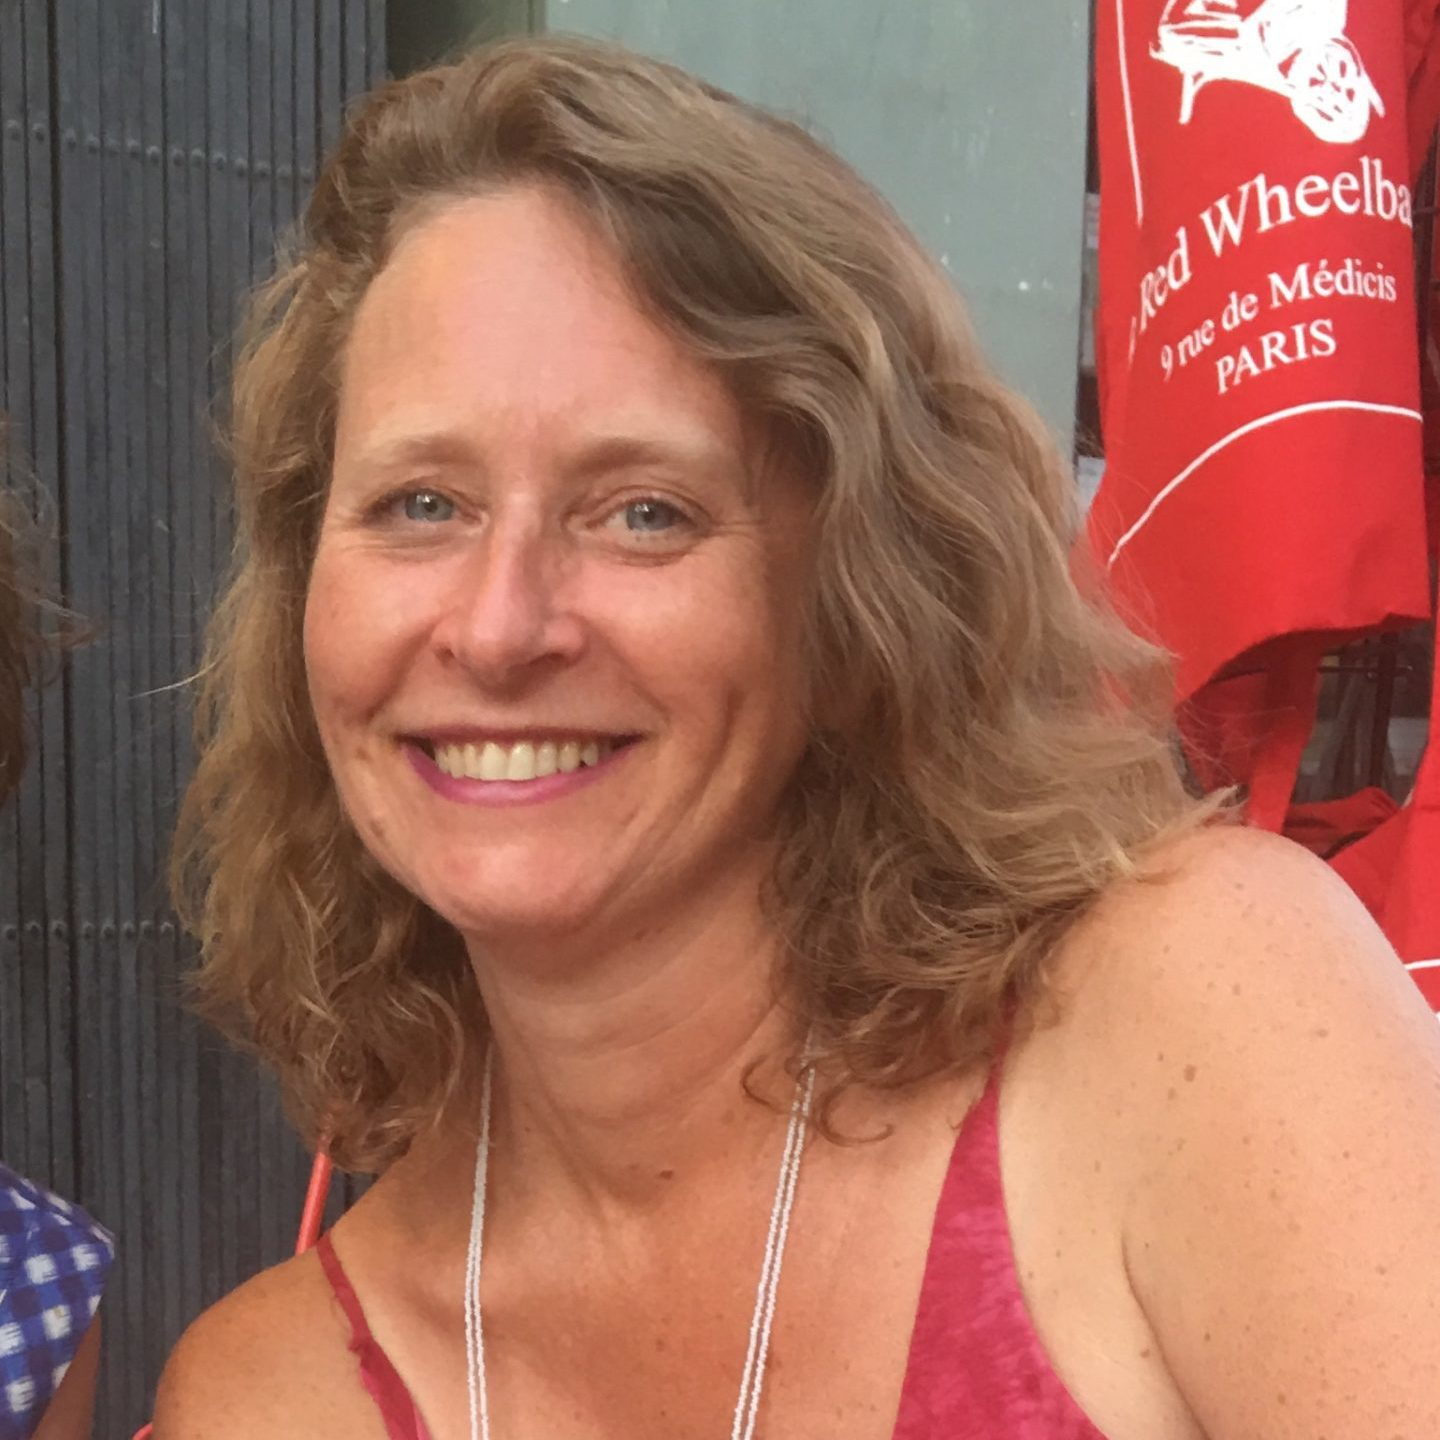 Sarah Riggs author photo, smiling in front of a red tote bag and a green wall